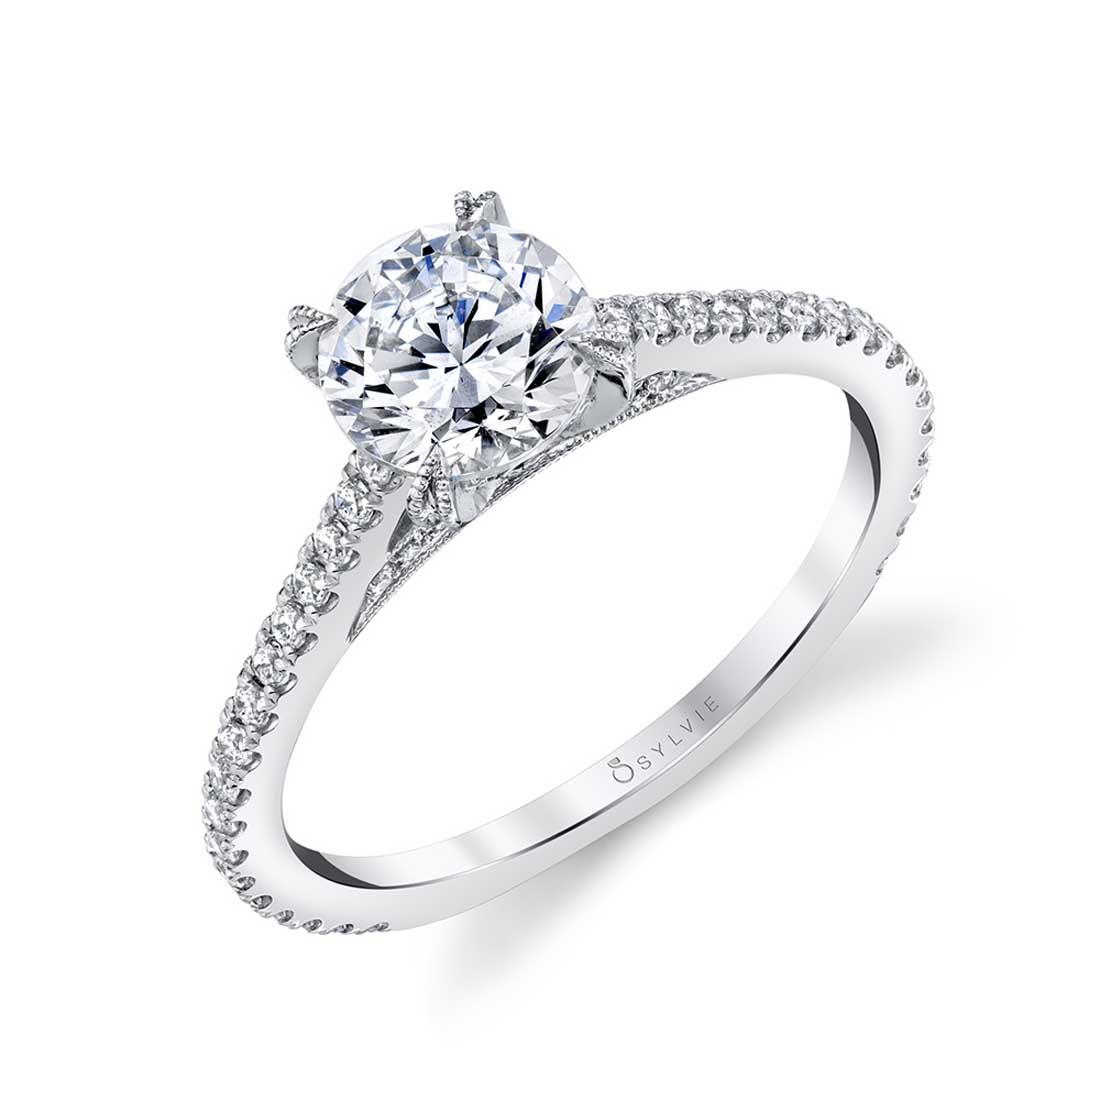 Sylvie Jeannette 14k White Gold Engagement Ring